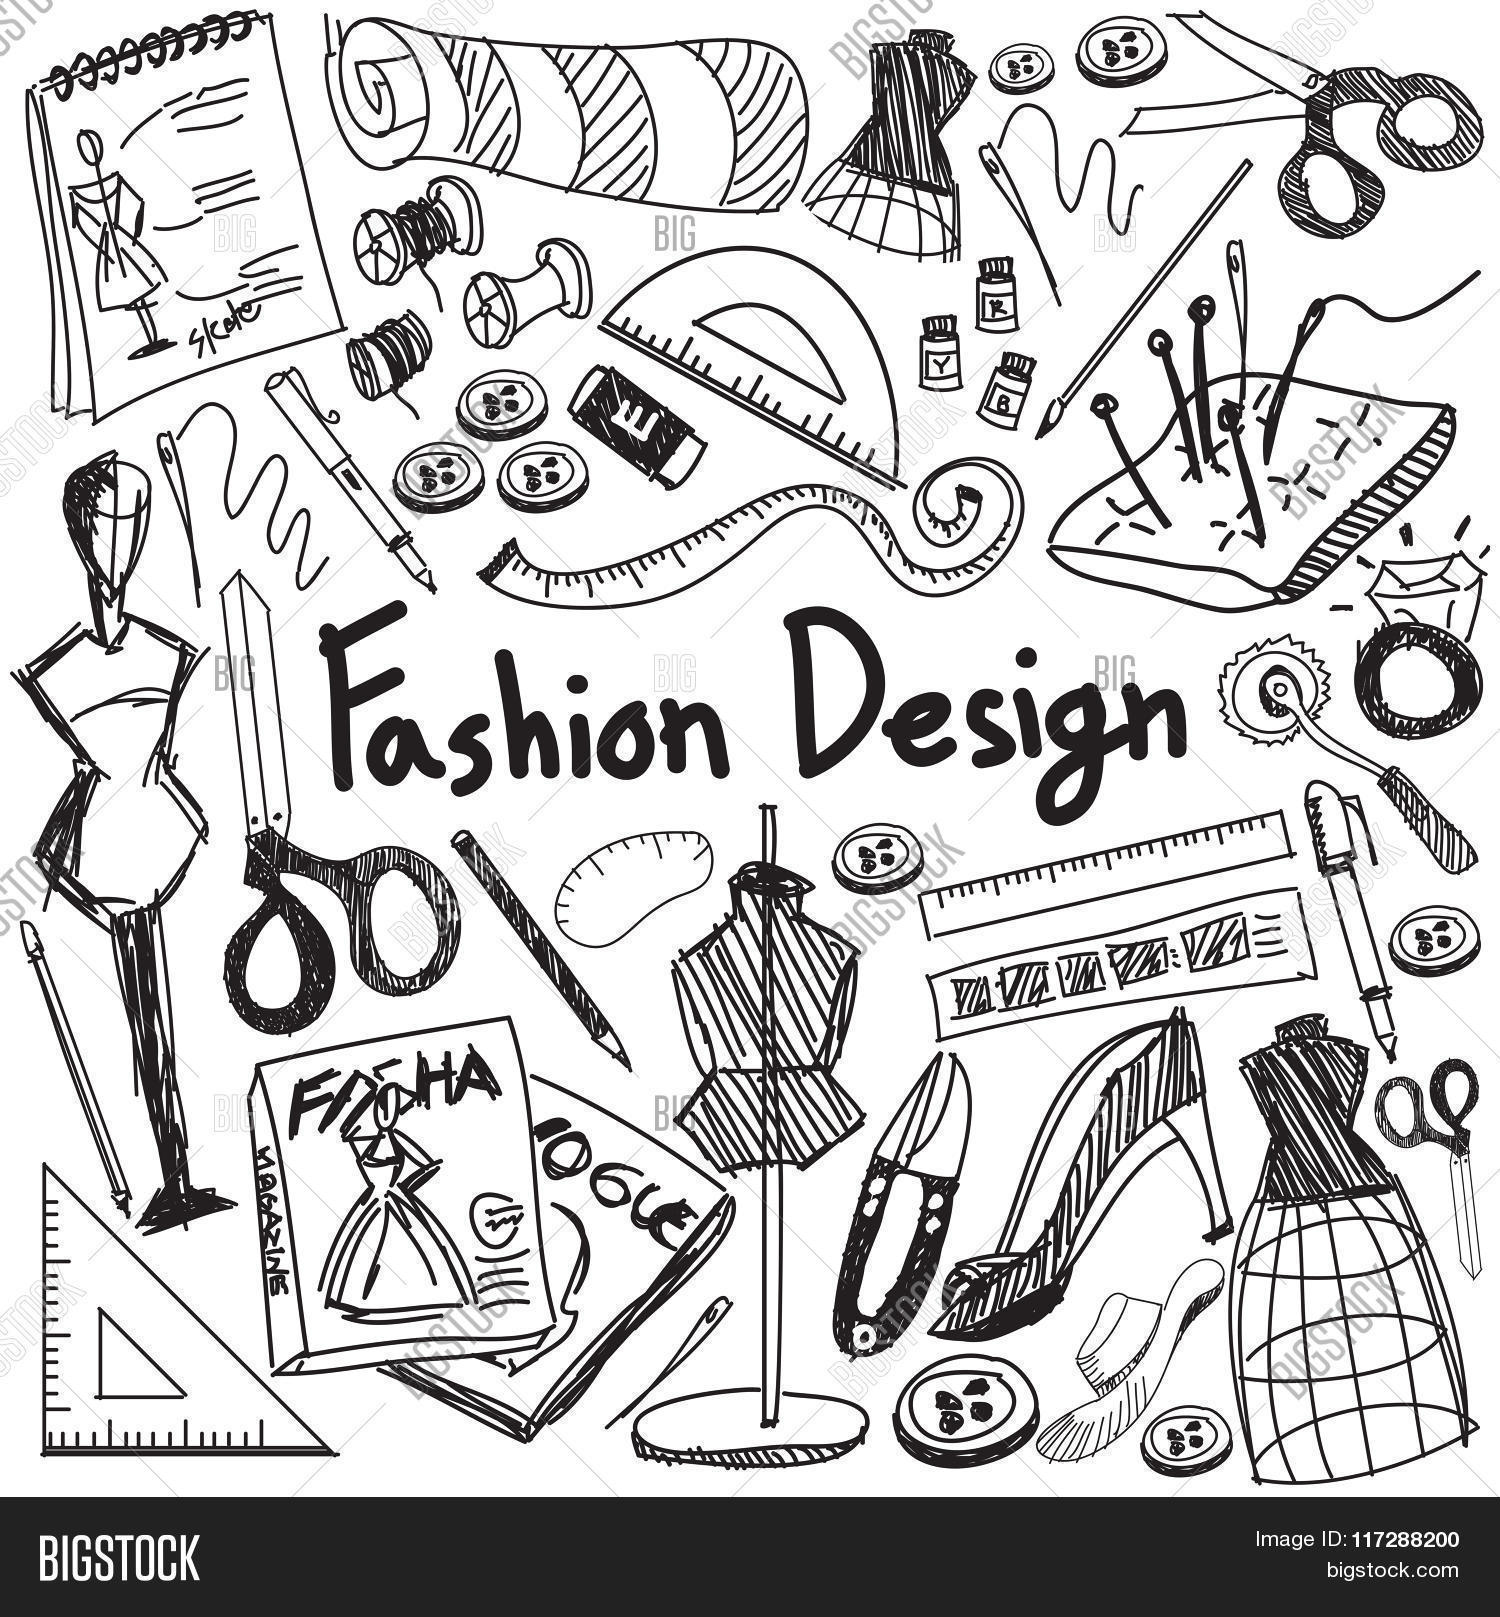 Fashion Design Education Handwriting Doodle Icon Tool Sign And Symbol In White Isolated Background P 117288200 Image Stock Photo